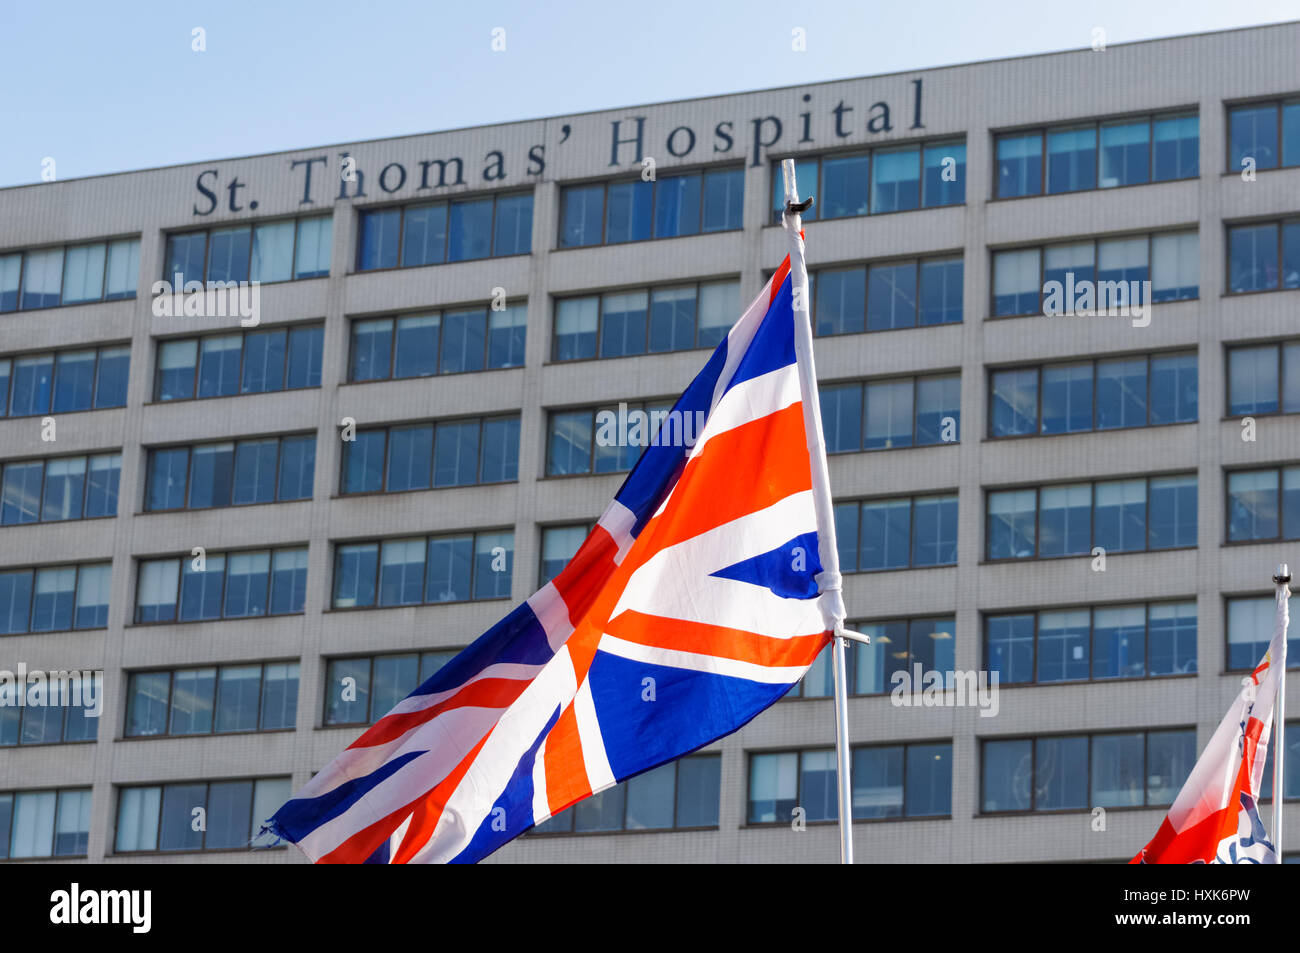 St. Thomas Hospital, London England United Kingdom UK - Stock Image